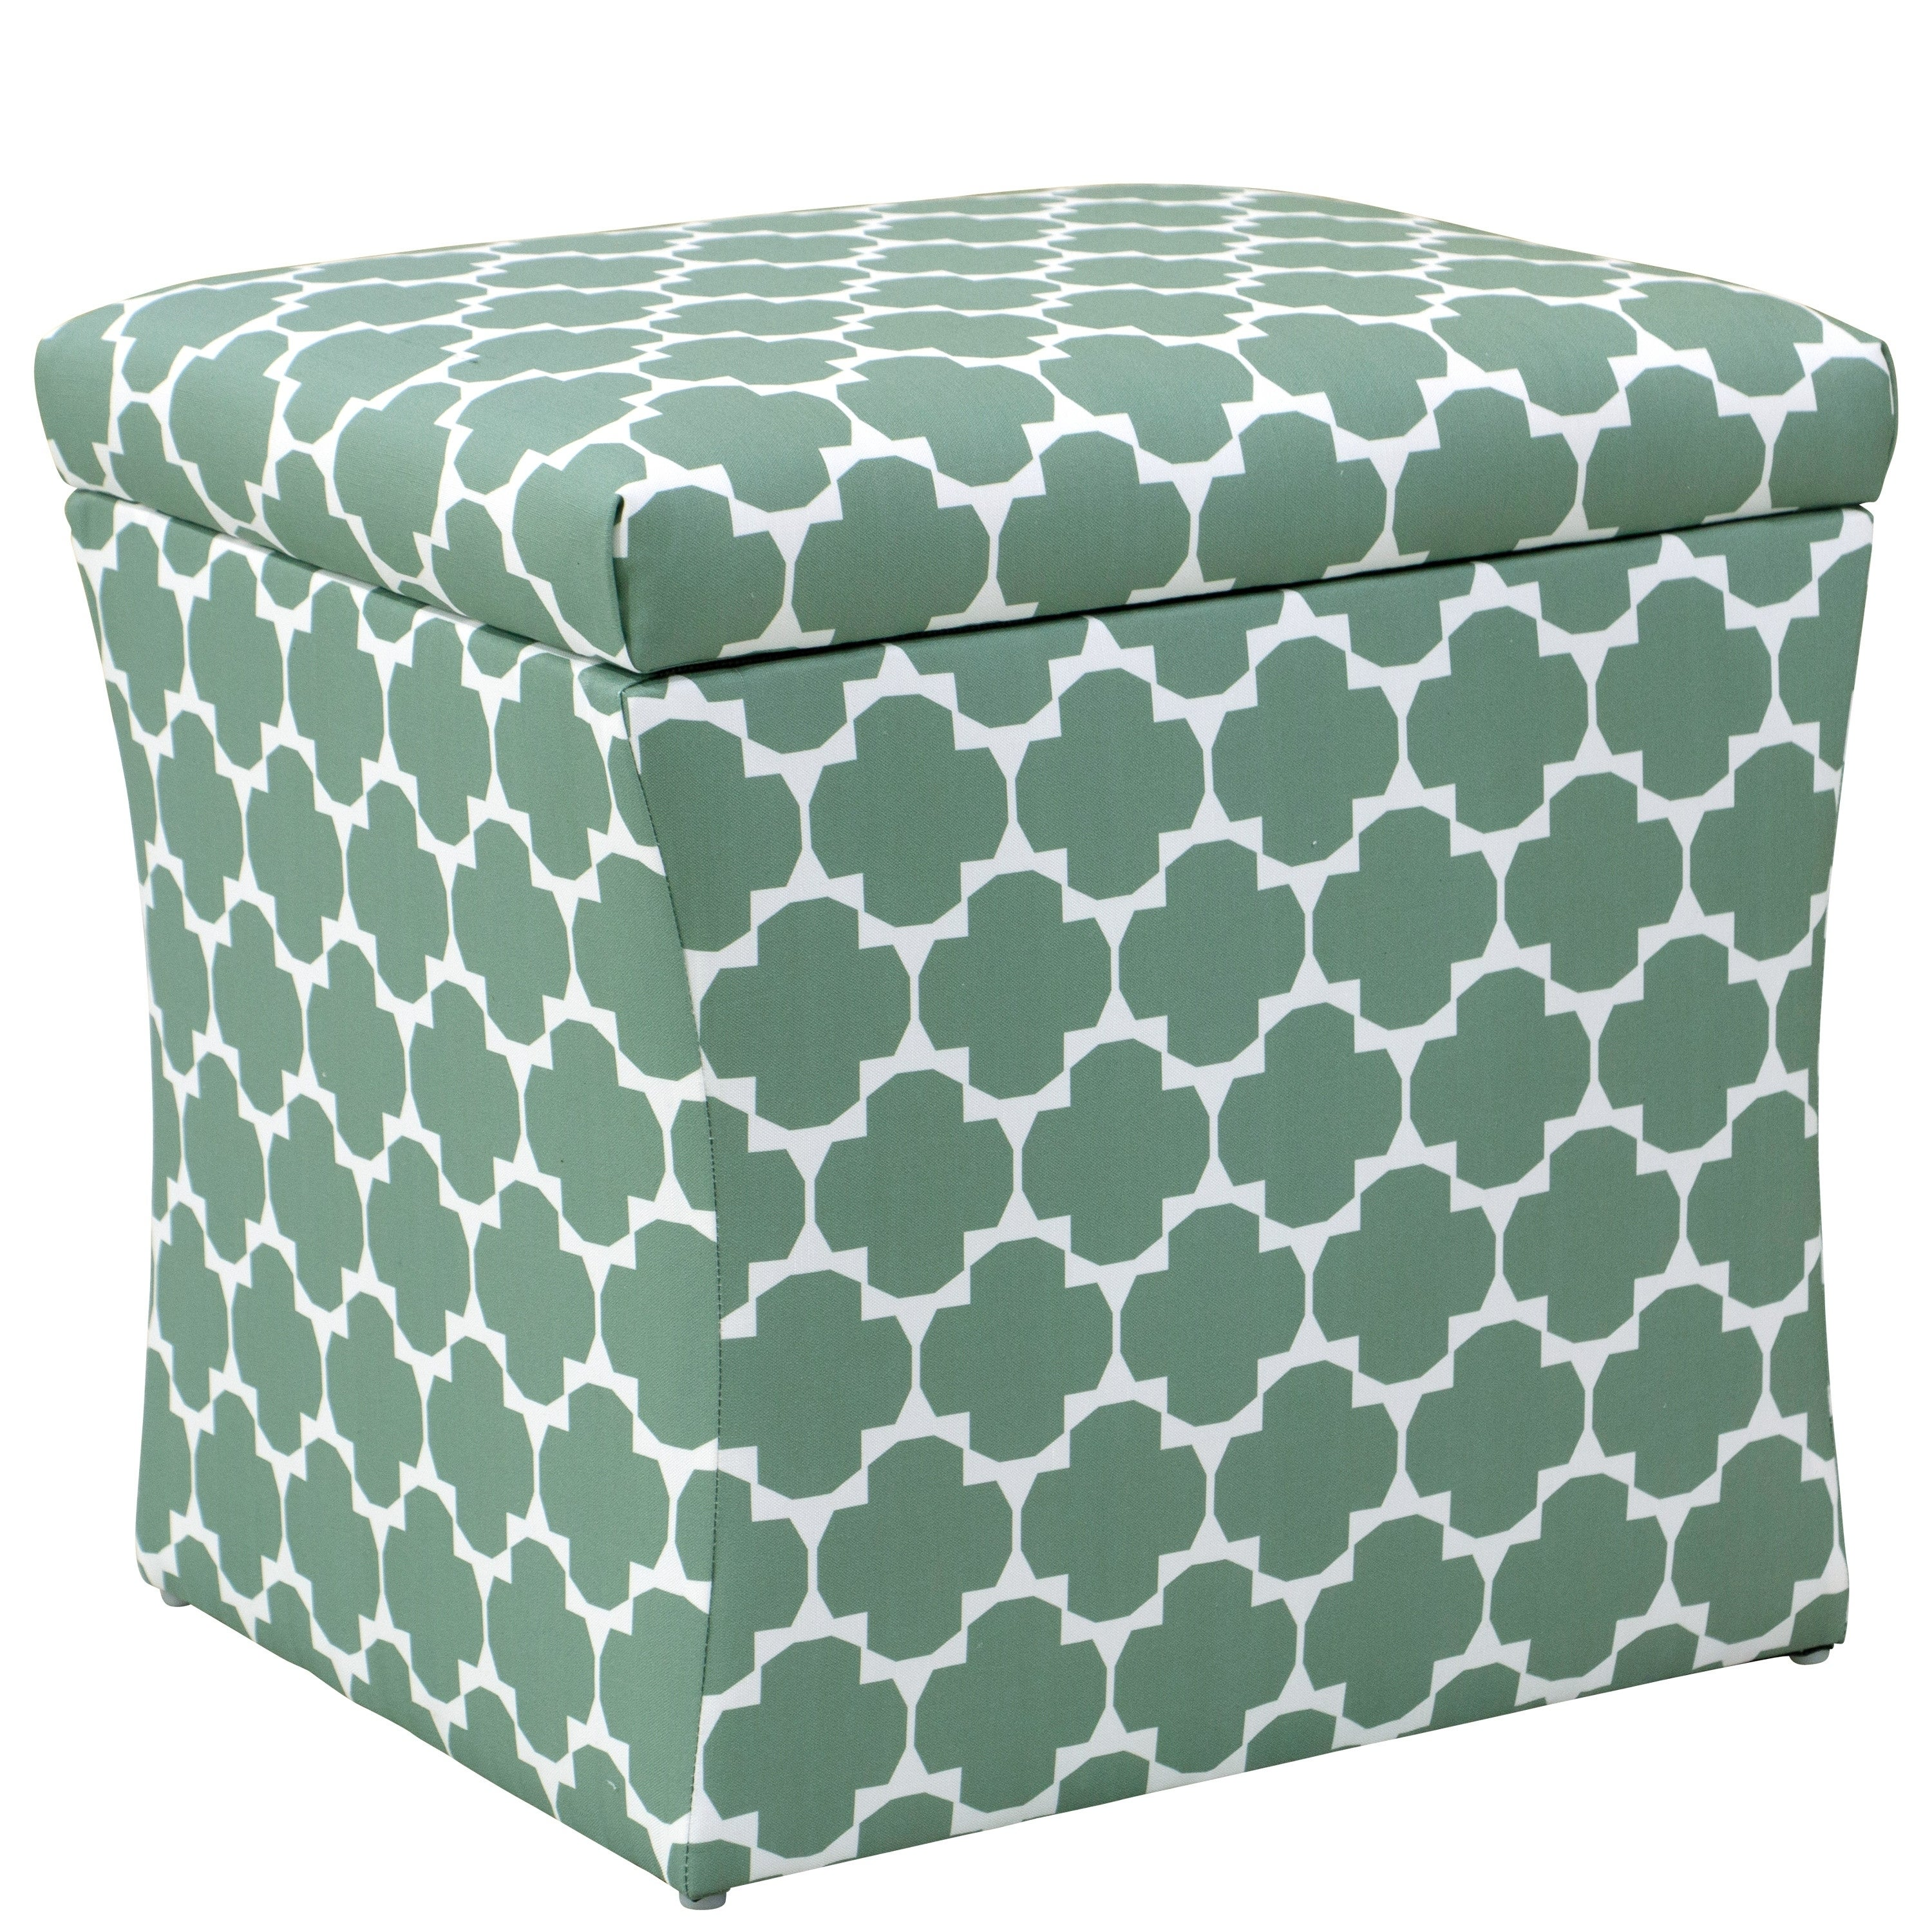 Sensational Skyline Furniture Storage Ottoman In Facet Green Ocoug Best Dining Table And Chair Ideas Images Ocougorg